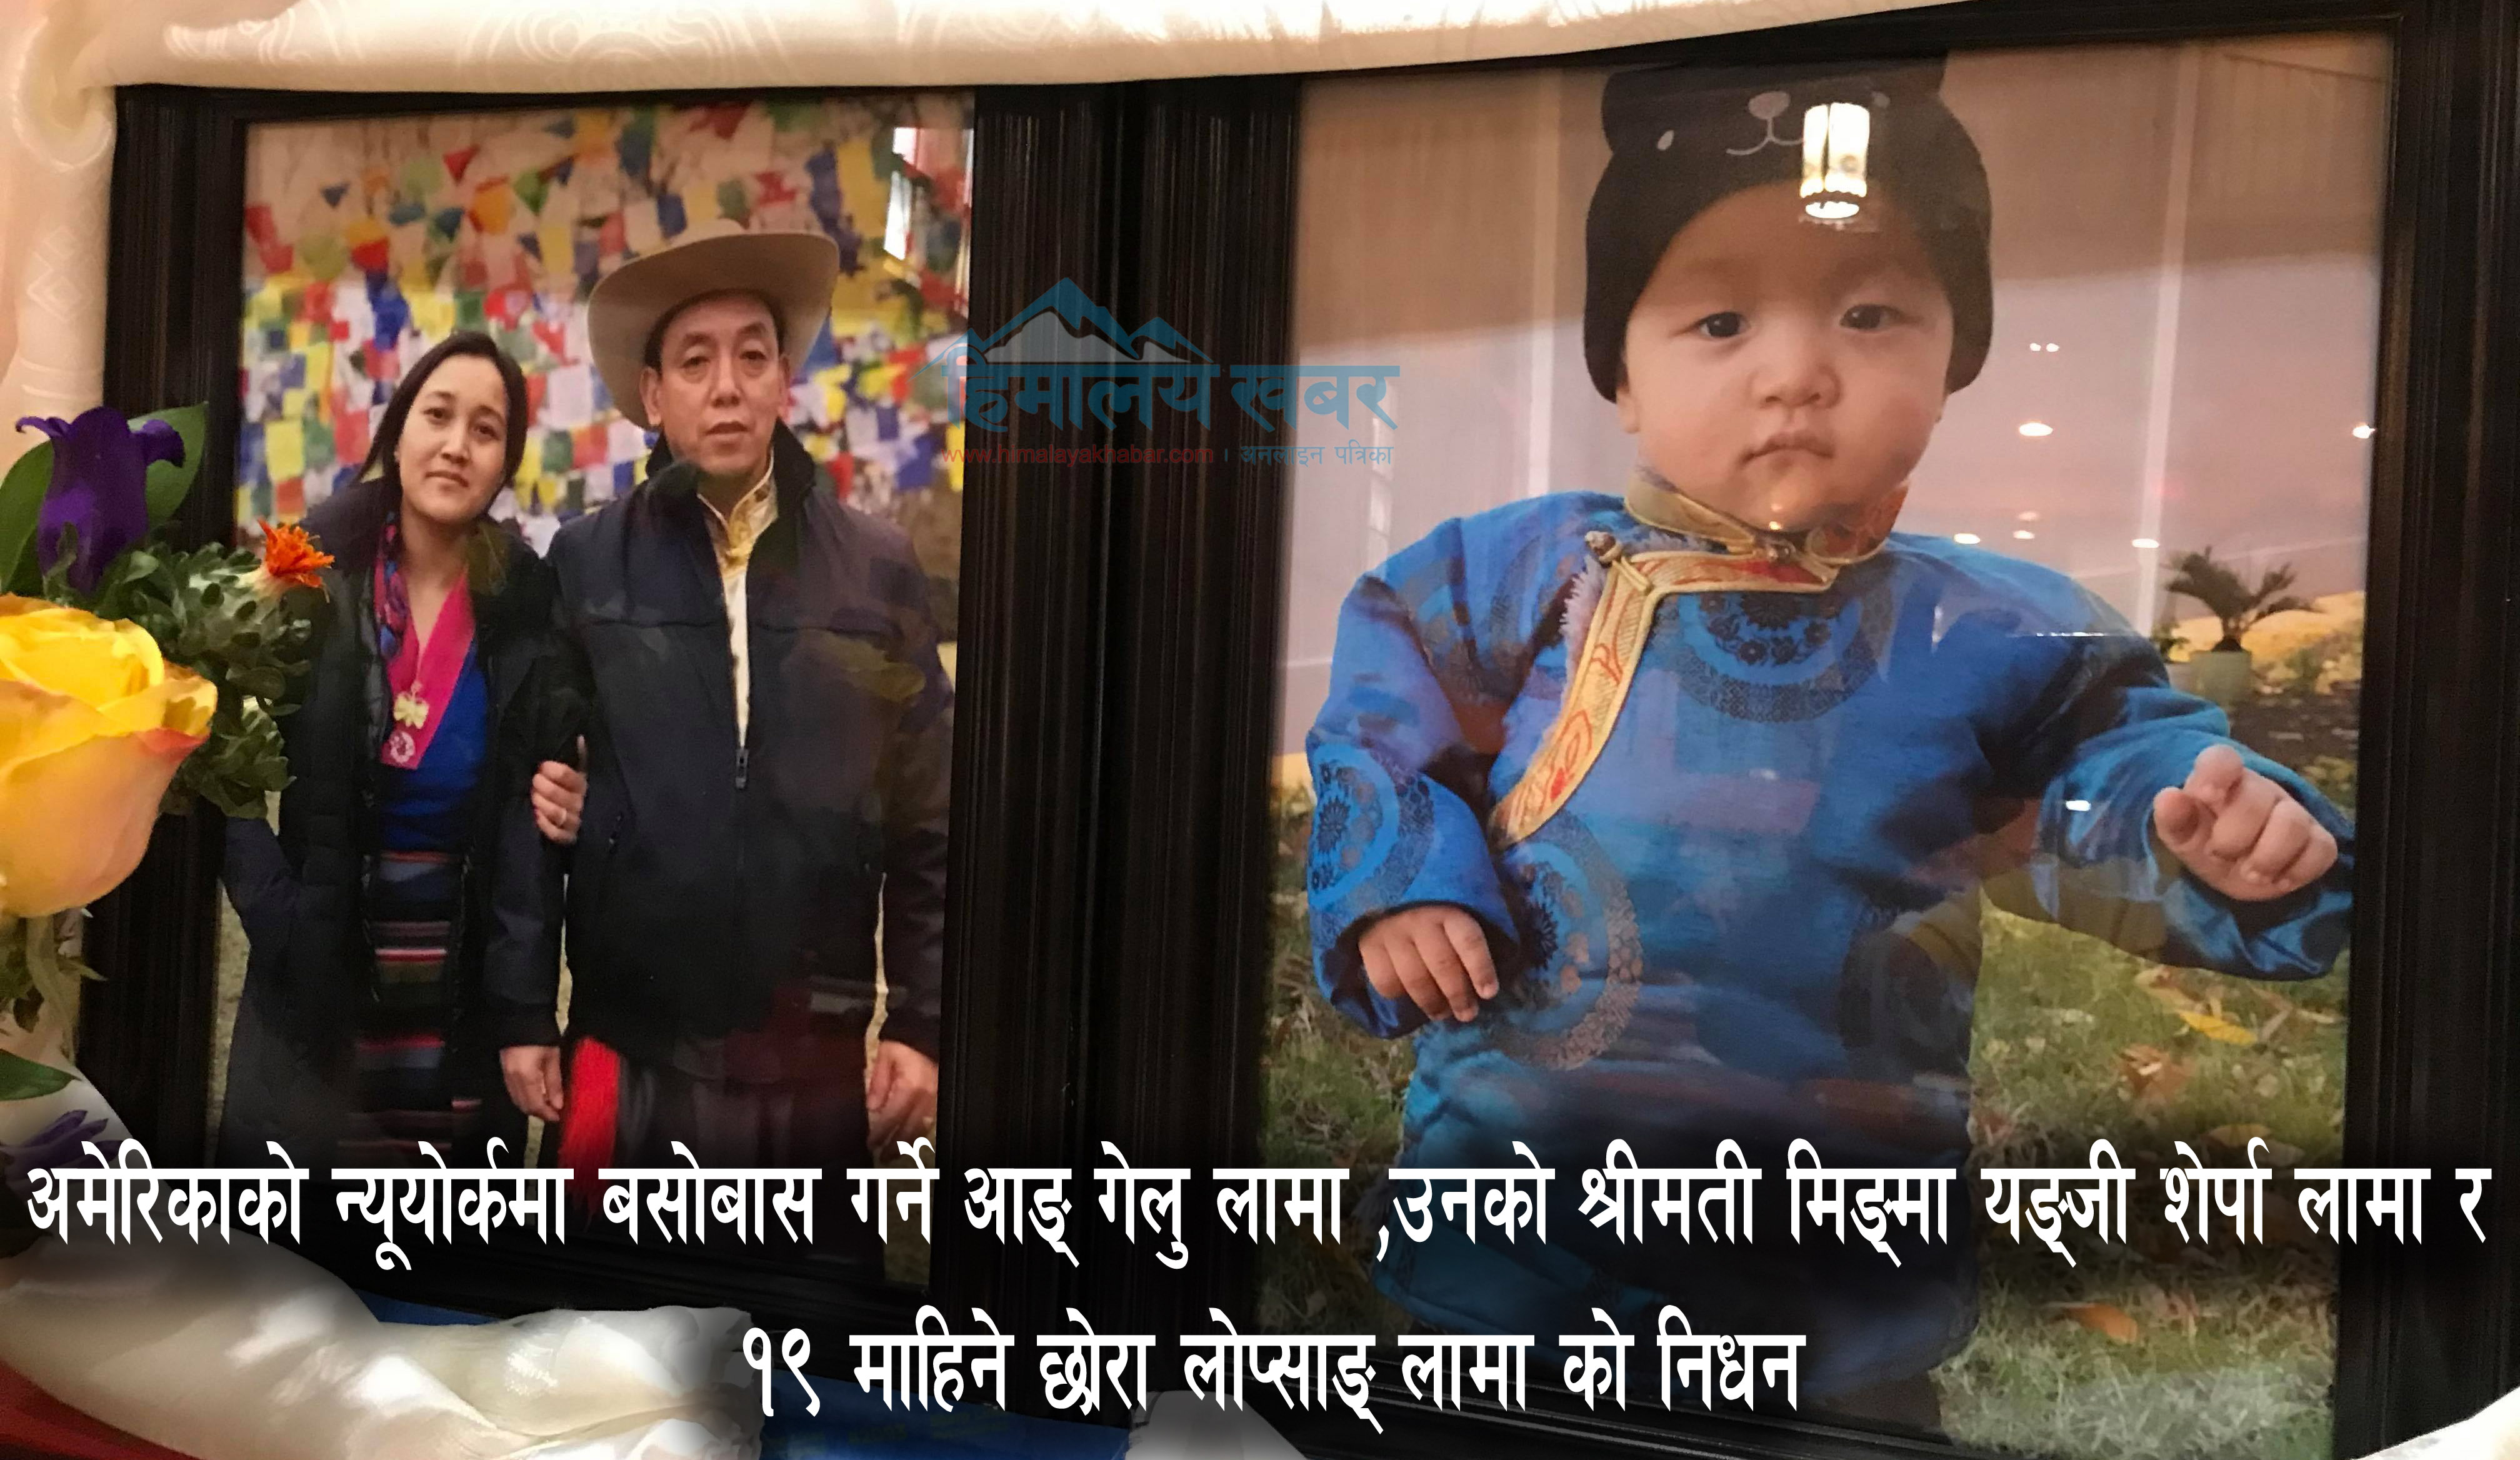 Nepalese family found dead in Queens, New York